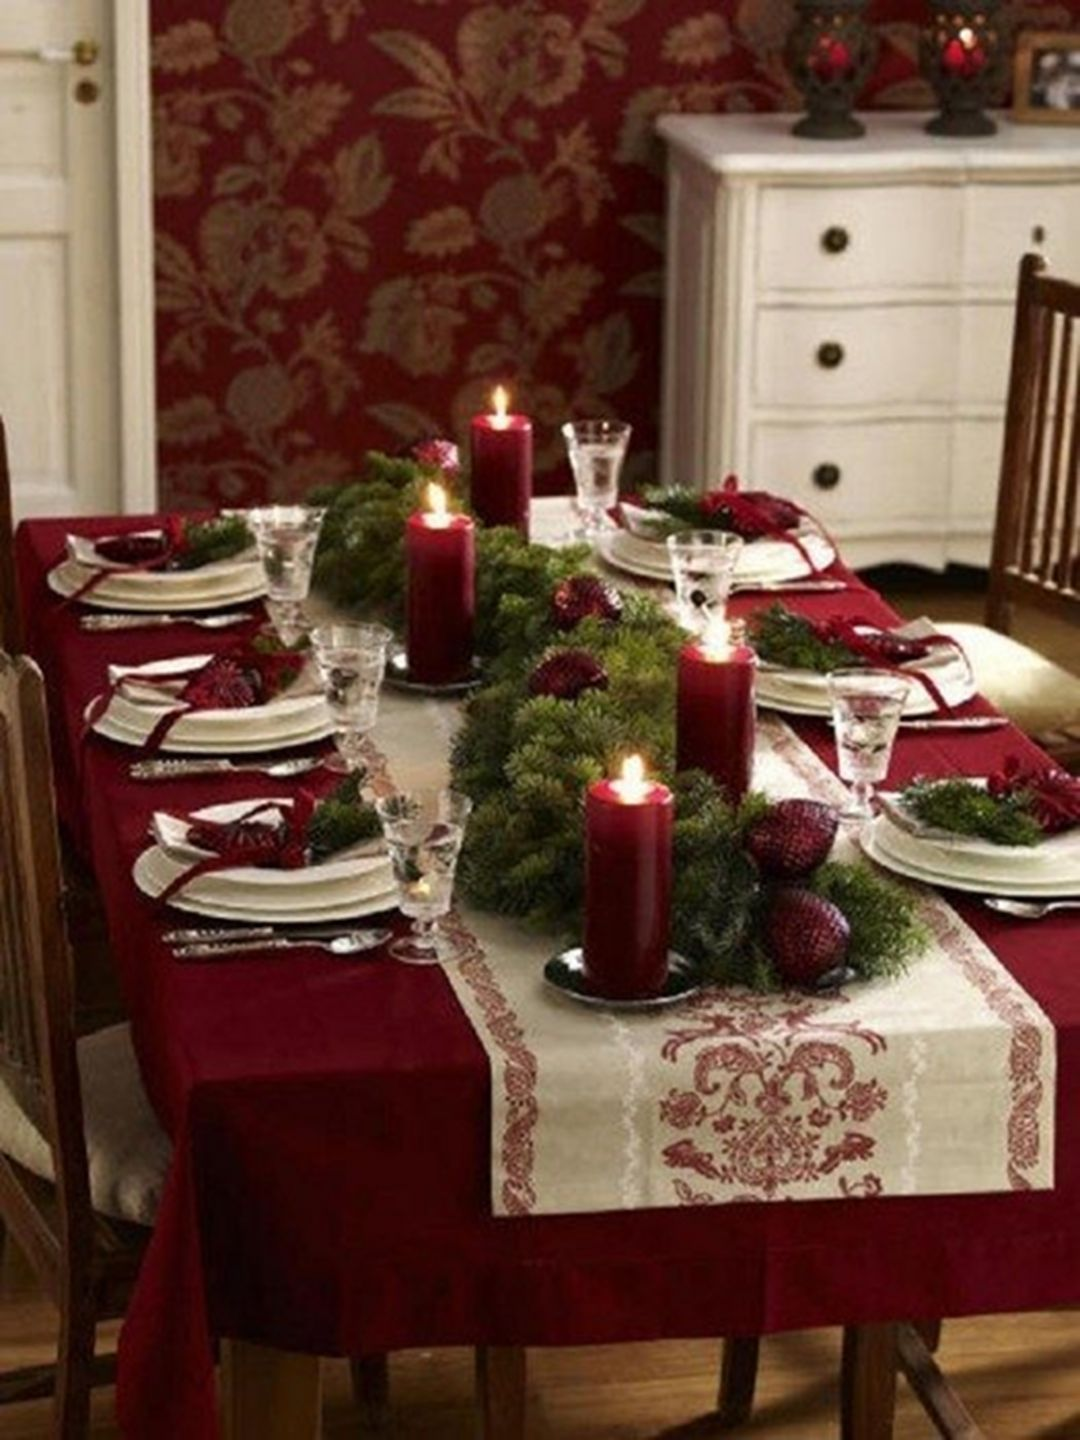 Top 25 Wonderful Christmas Dining Table Decoration Ideas Christmas Dining Table Christmas Table Decorations Christmas Centerpieces